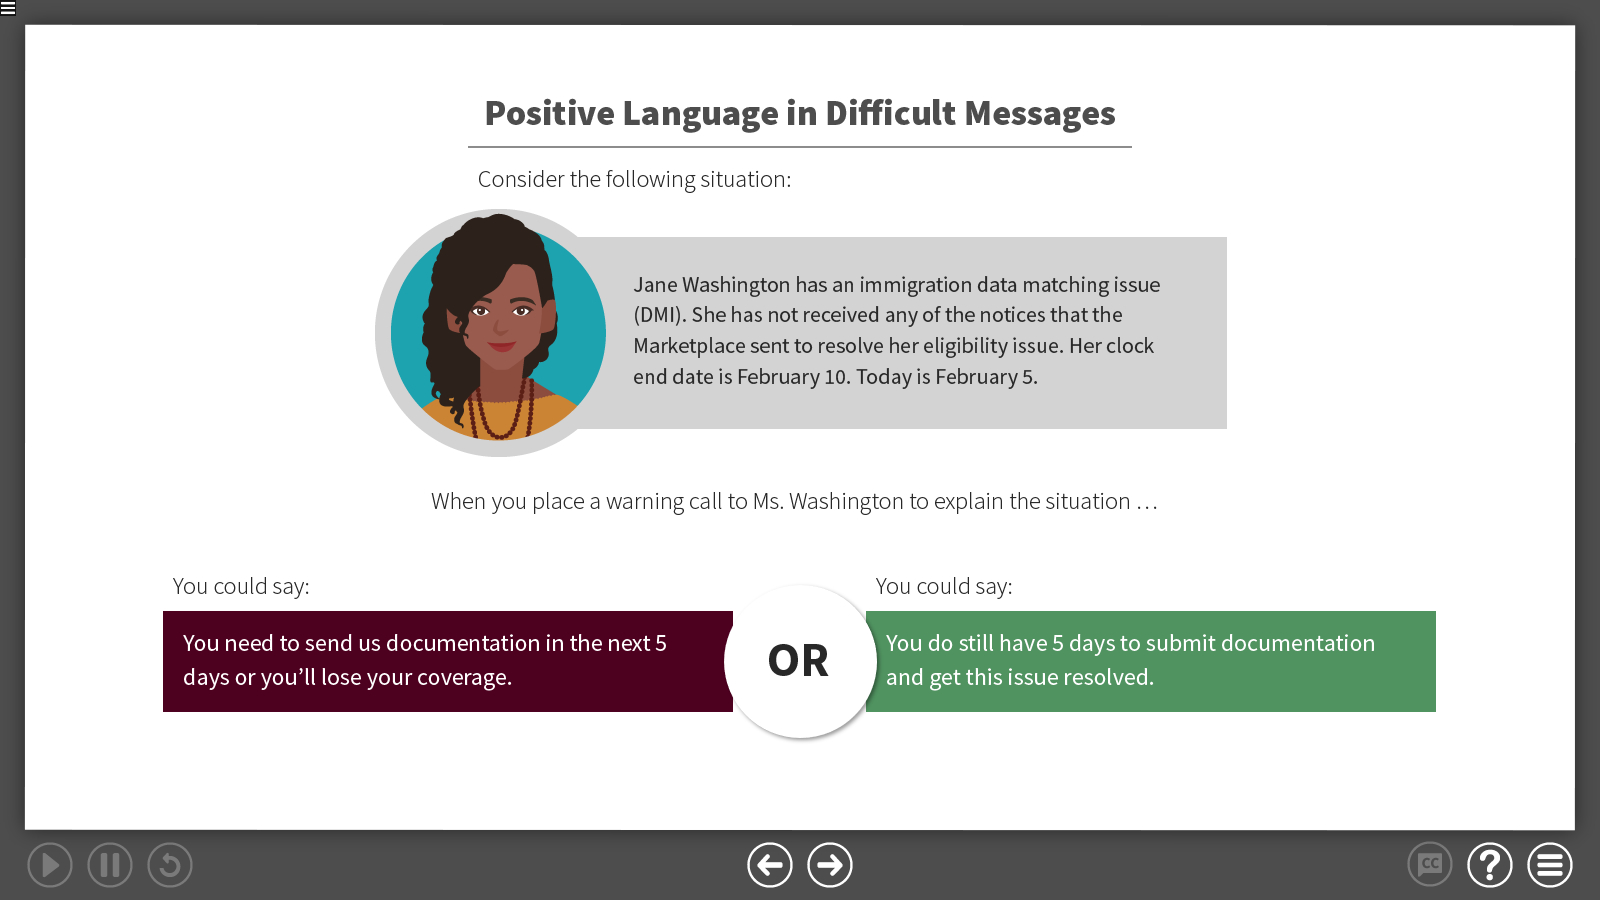 a slide showing how to rephrase a negative statement to sound more positive